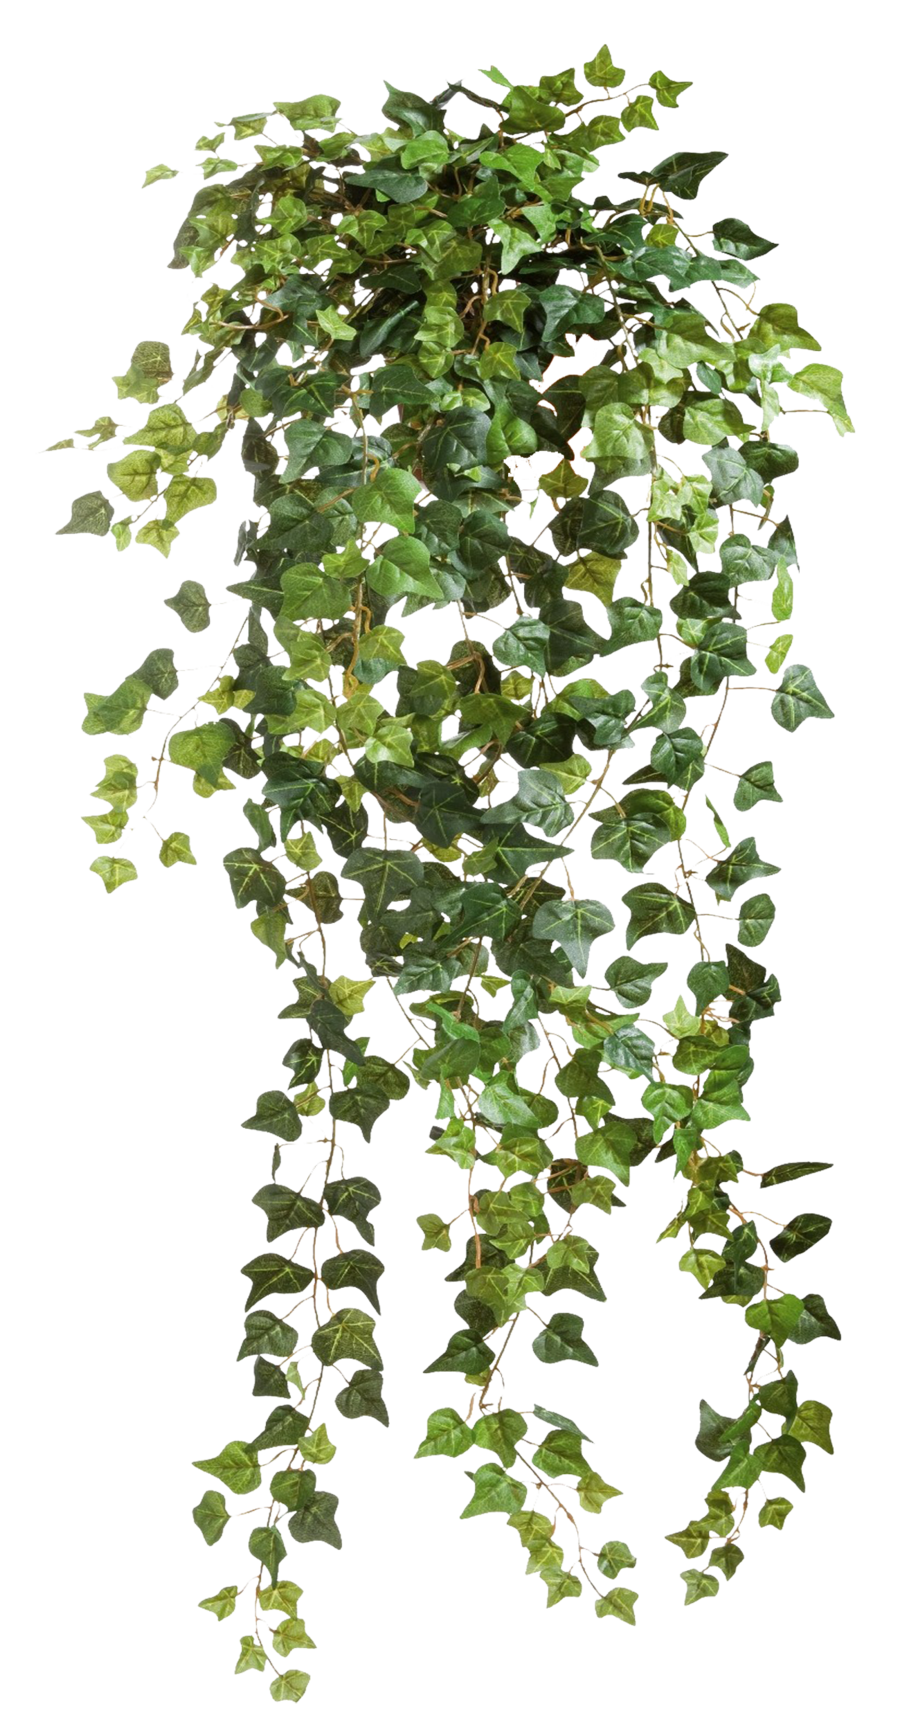 Ivy Vines Clear Cut Png image #43678